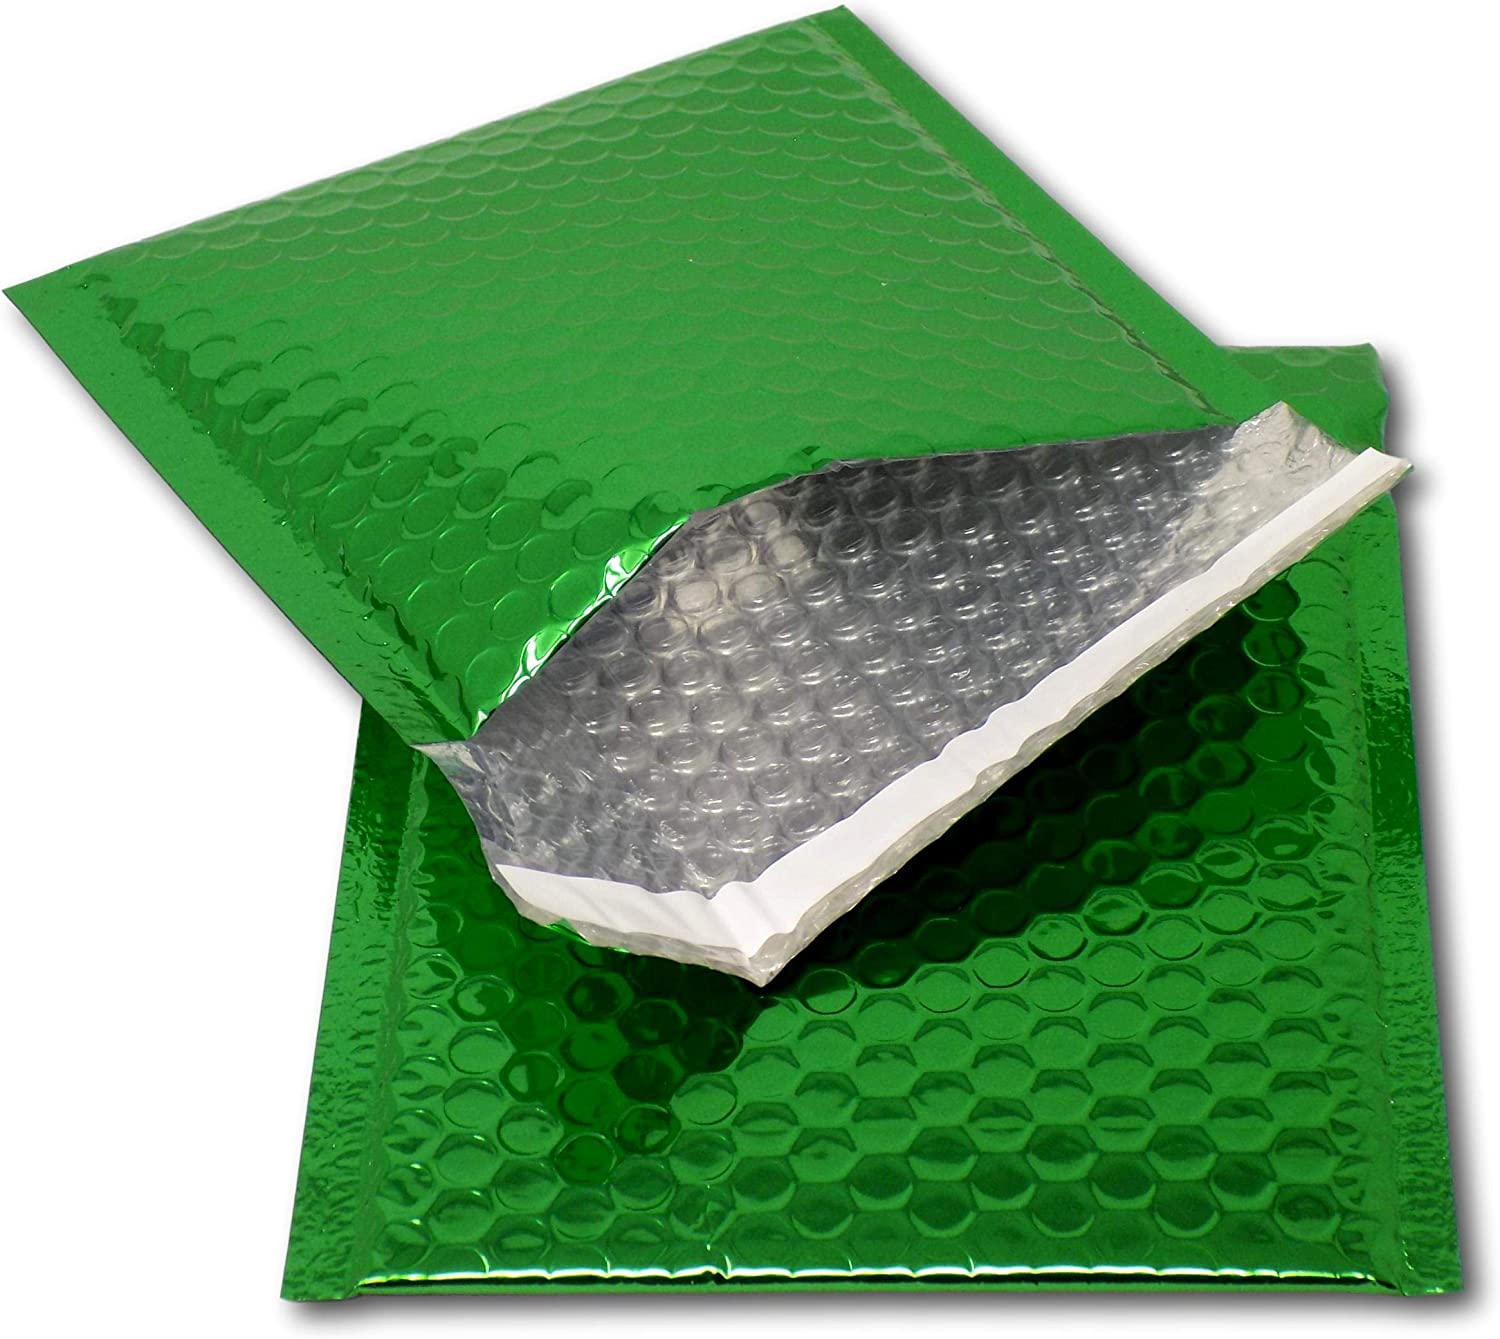 A4 // C4-324mm x 230mm Promotions or and Alternative to Gift wrap EPOSGEAR 25 Green Shiny Metallic Foil Bubble Padded Bag Mailing Envelopes Perfect for Marketing